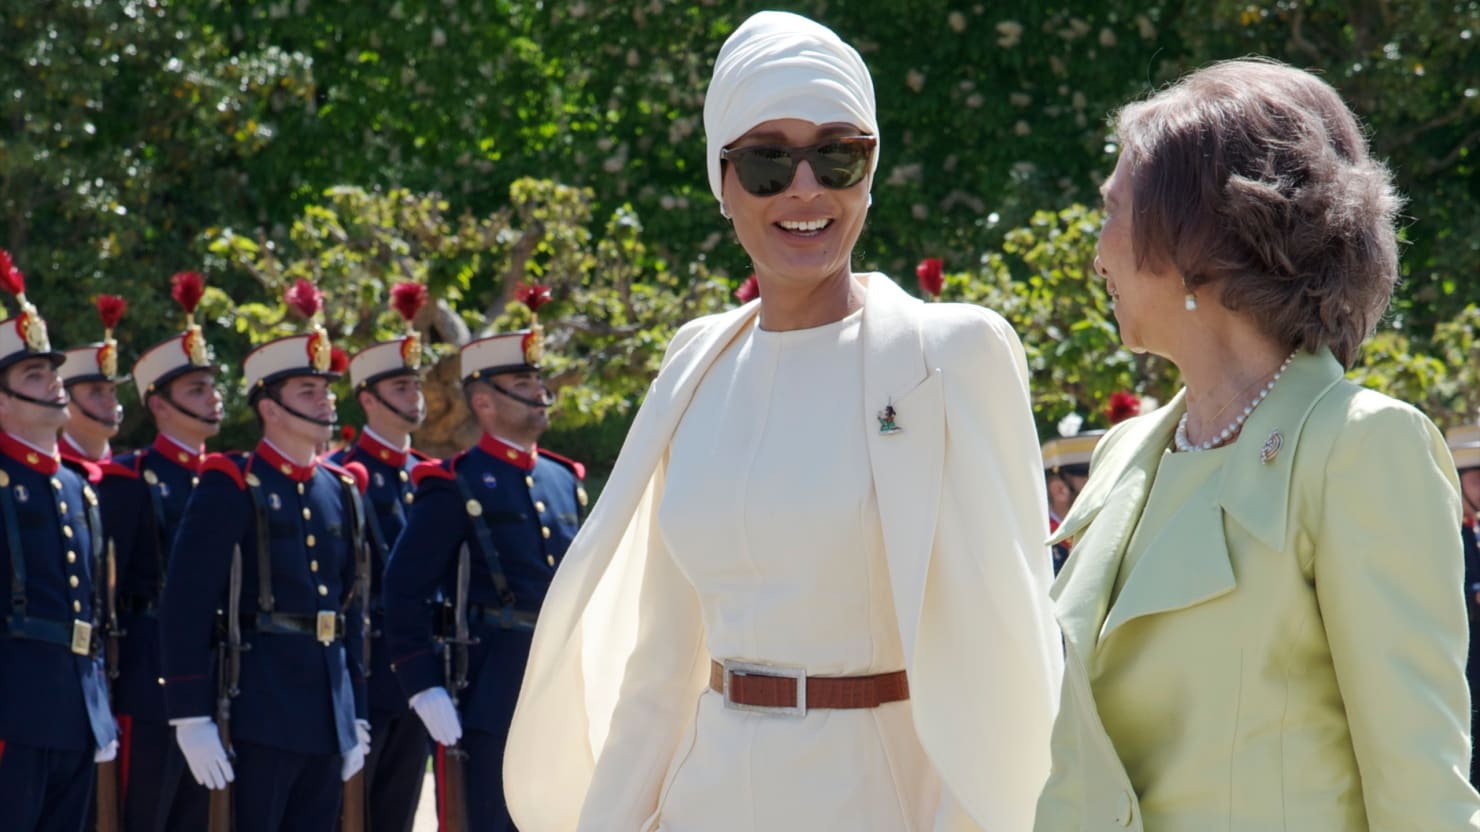 Why You've Never Heard of the World's Best-Dressed Royal